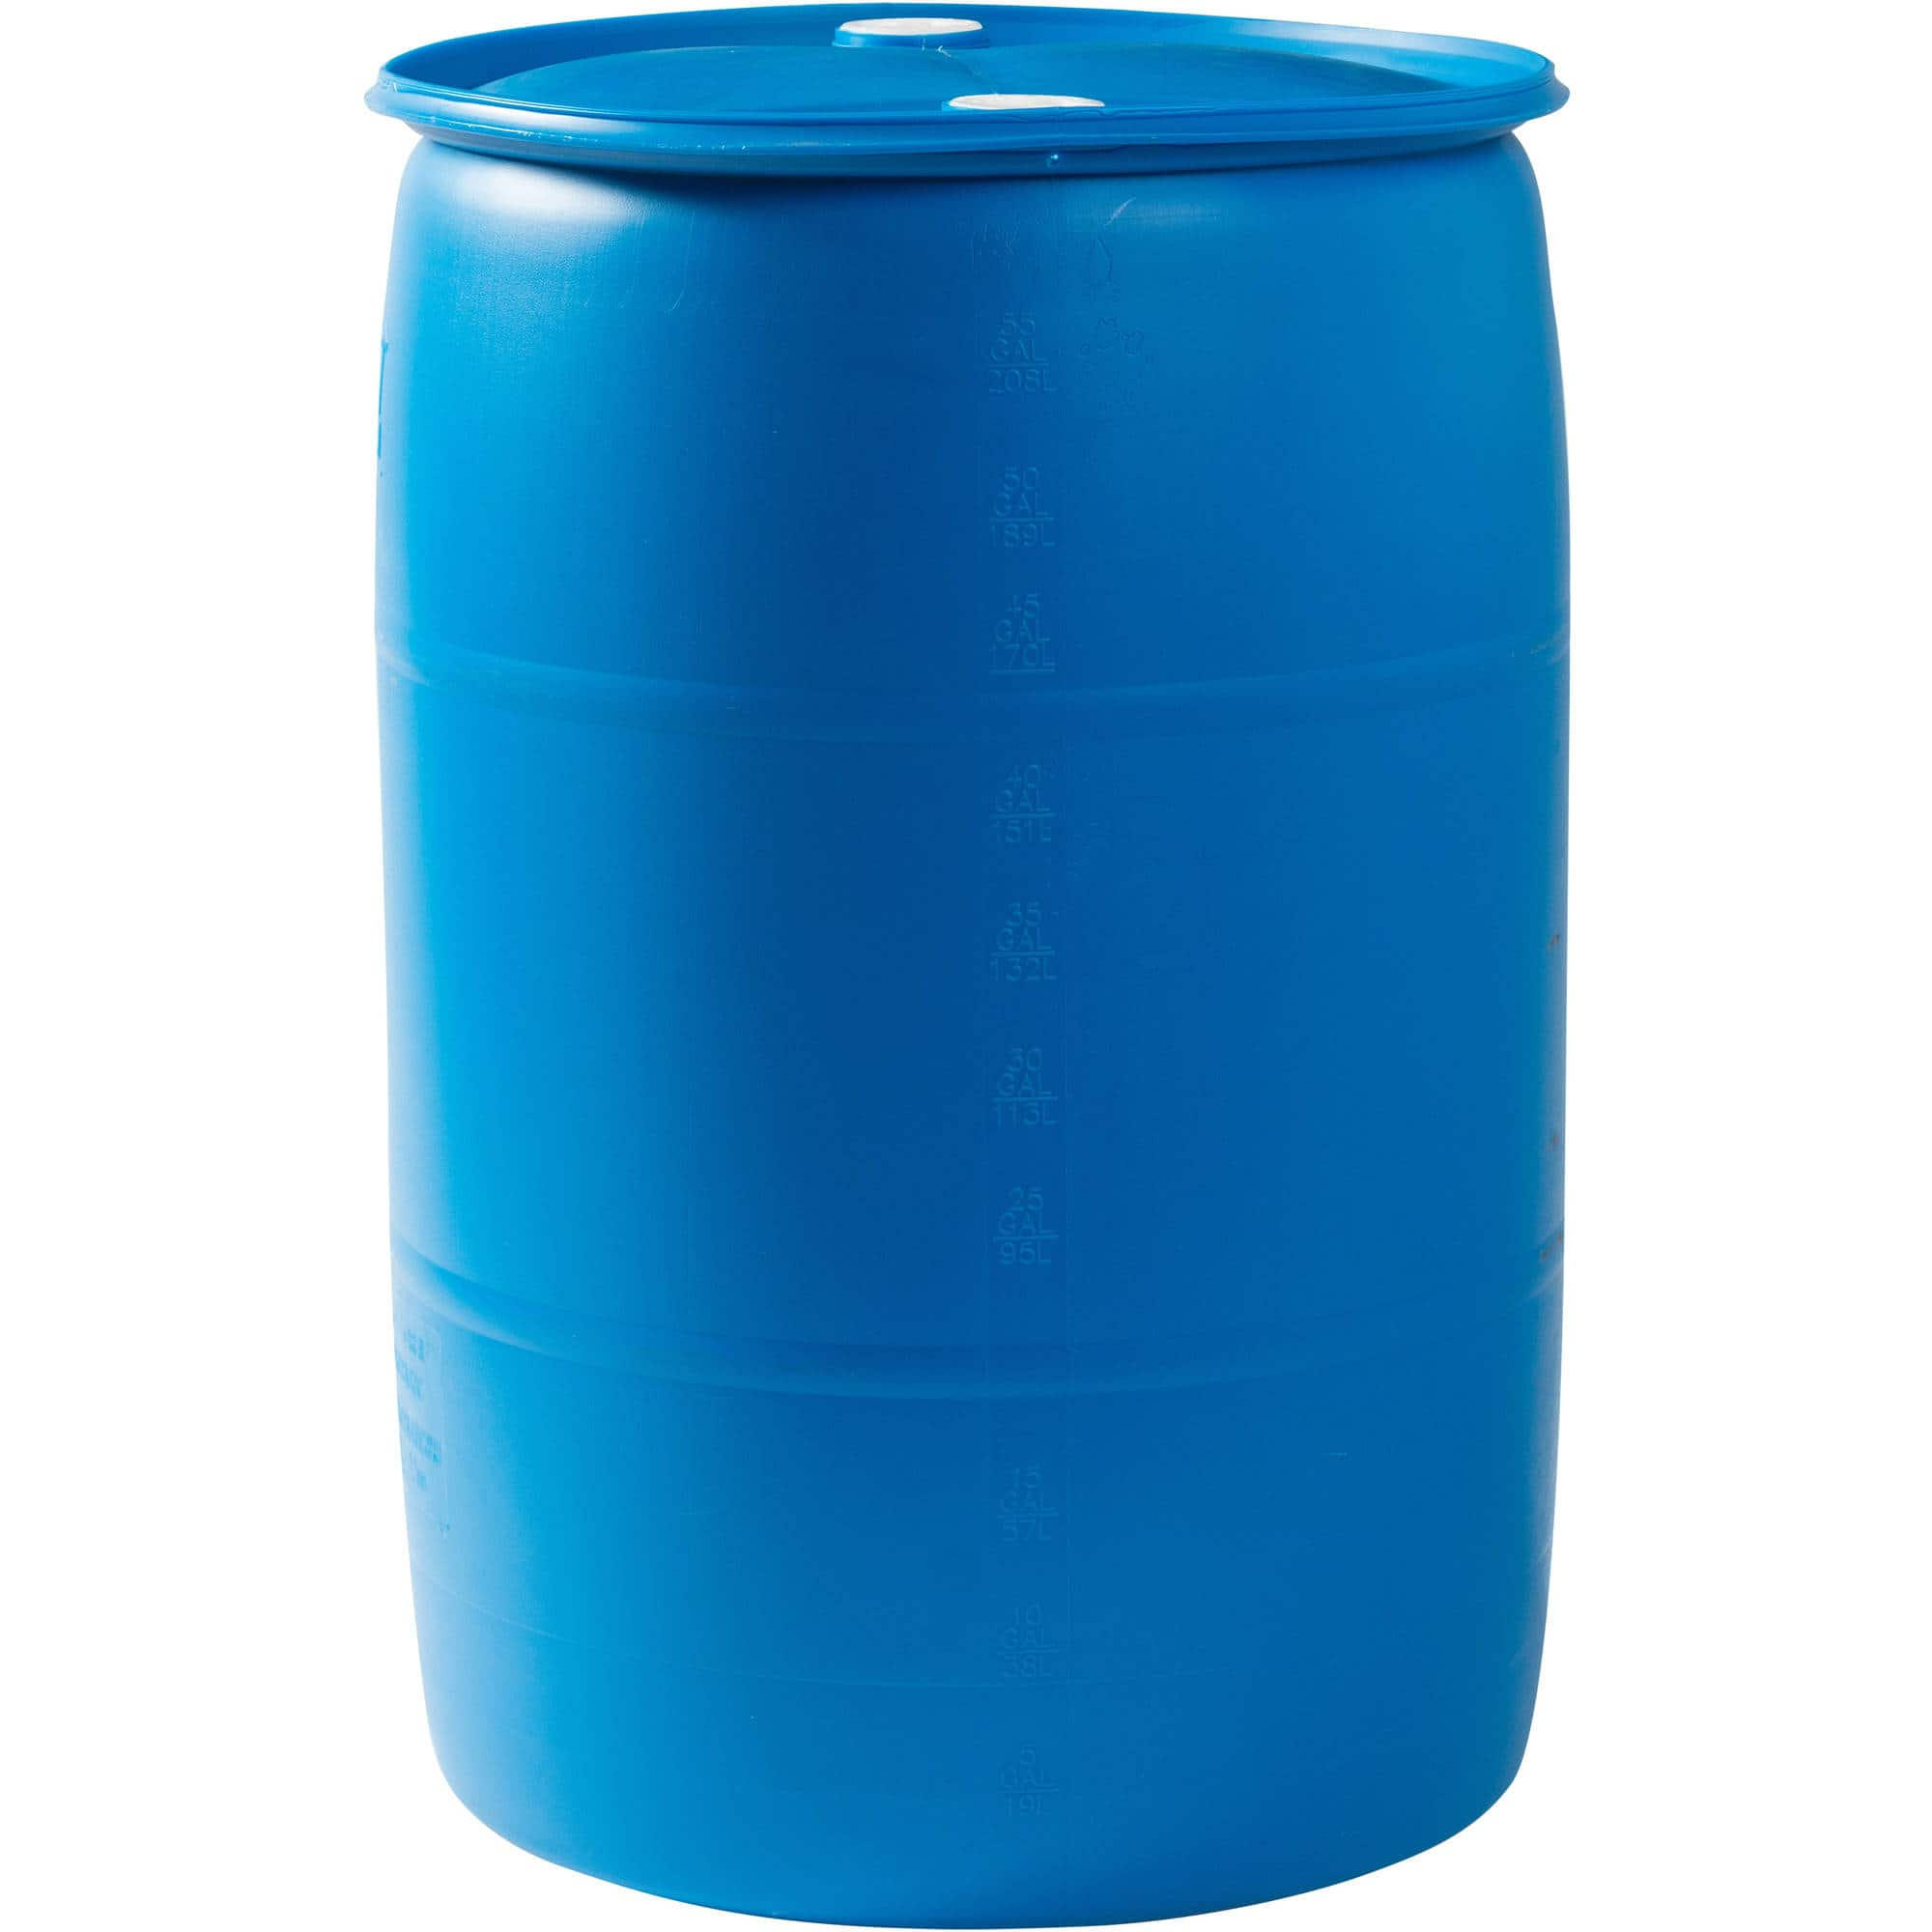 Deal Image  sc 1 st  Slickdeals & 55-Gallon Drum Augason Farms Water Storage Barrel - Slickdeals.net